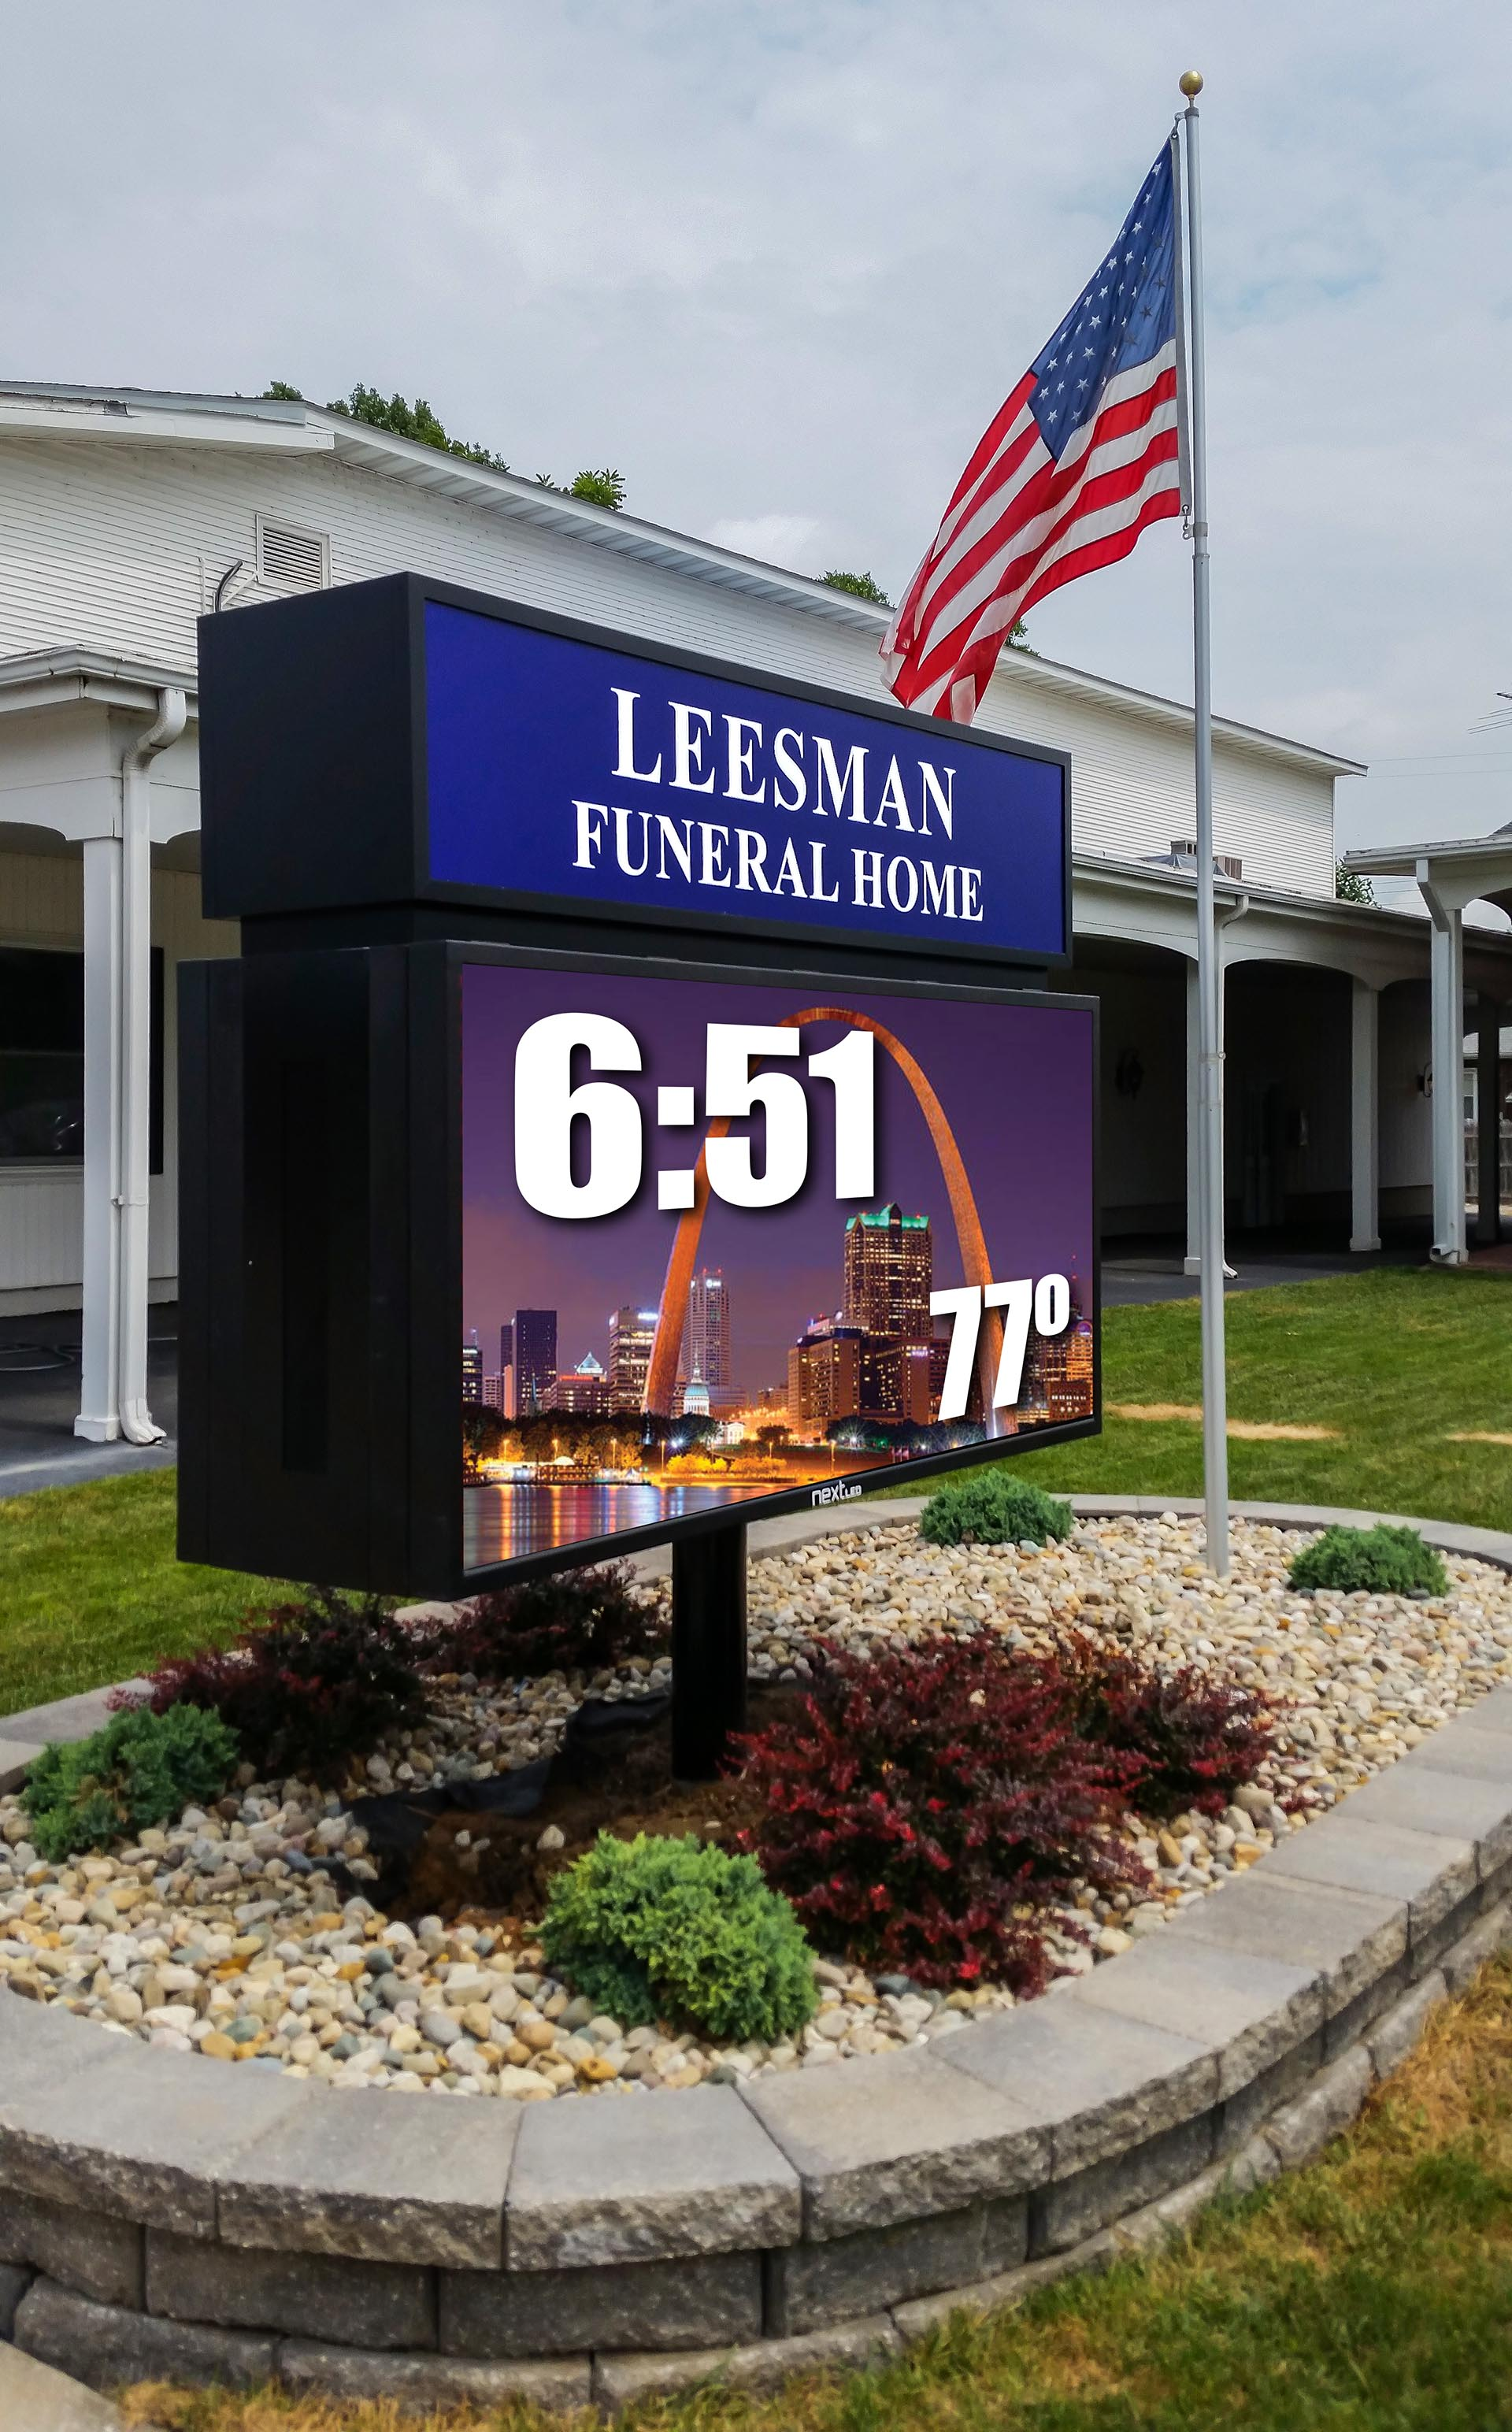 Leesman Funeral Home-Photo by Summit Signs.jpg